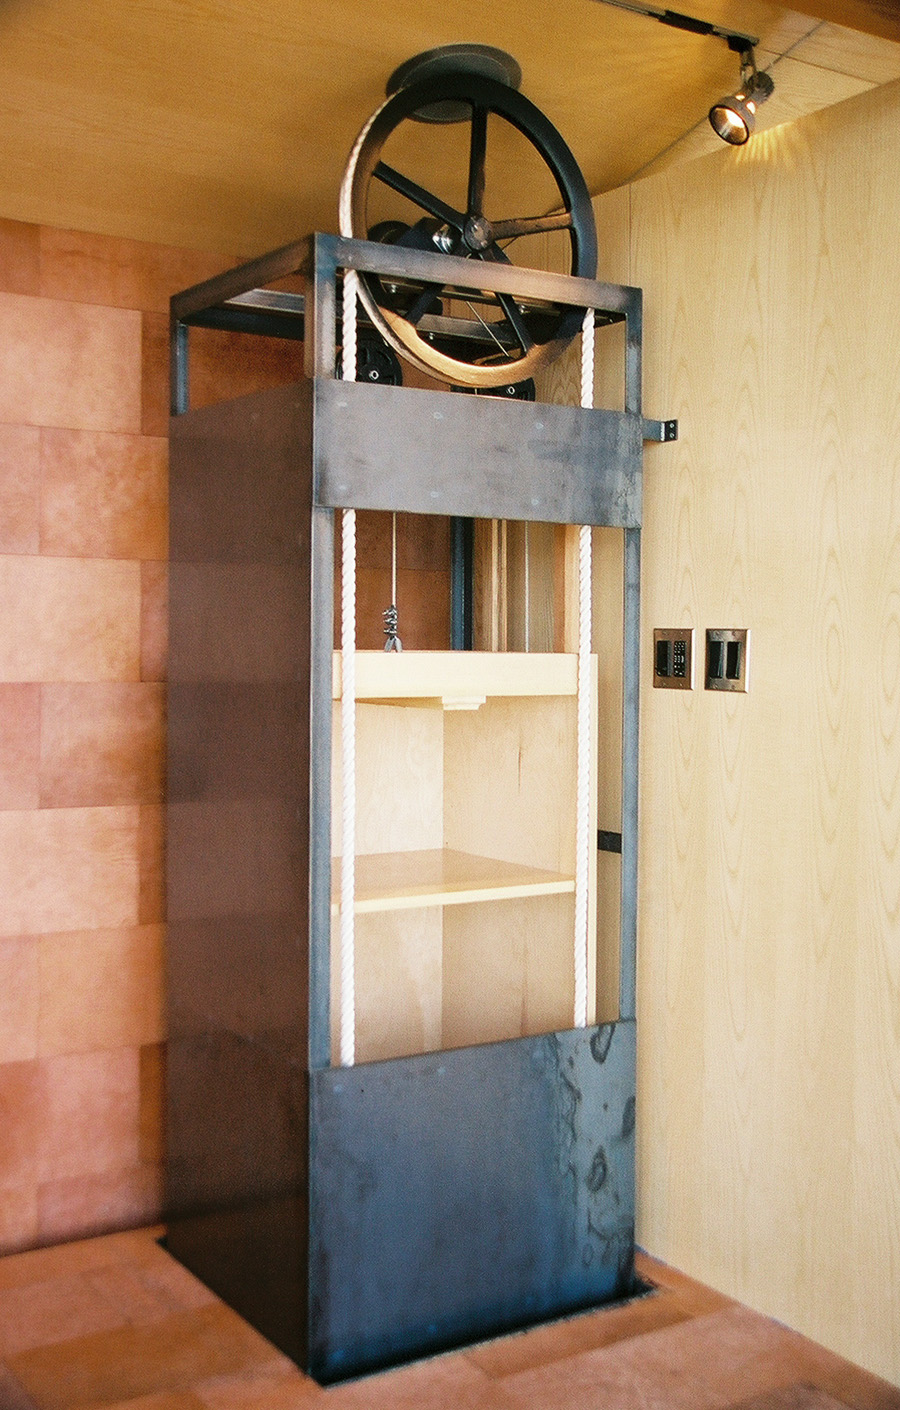 Containers pulley systems folio for Home elevator kits